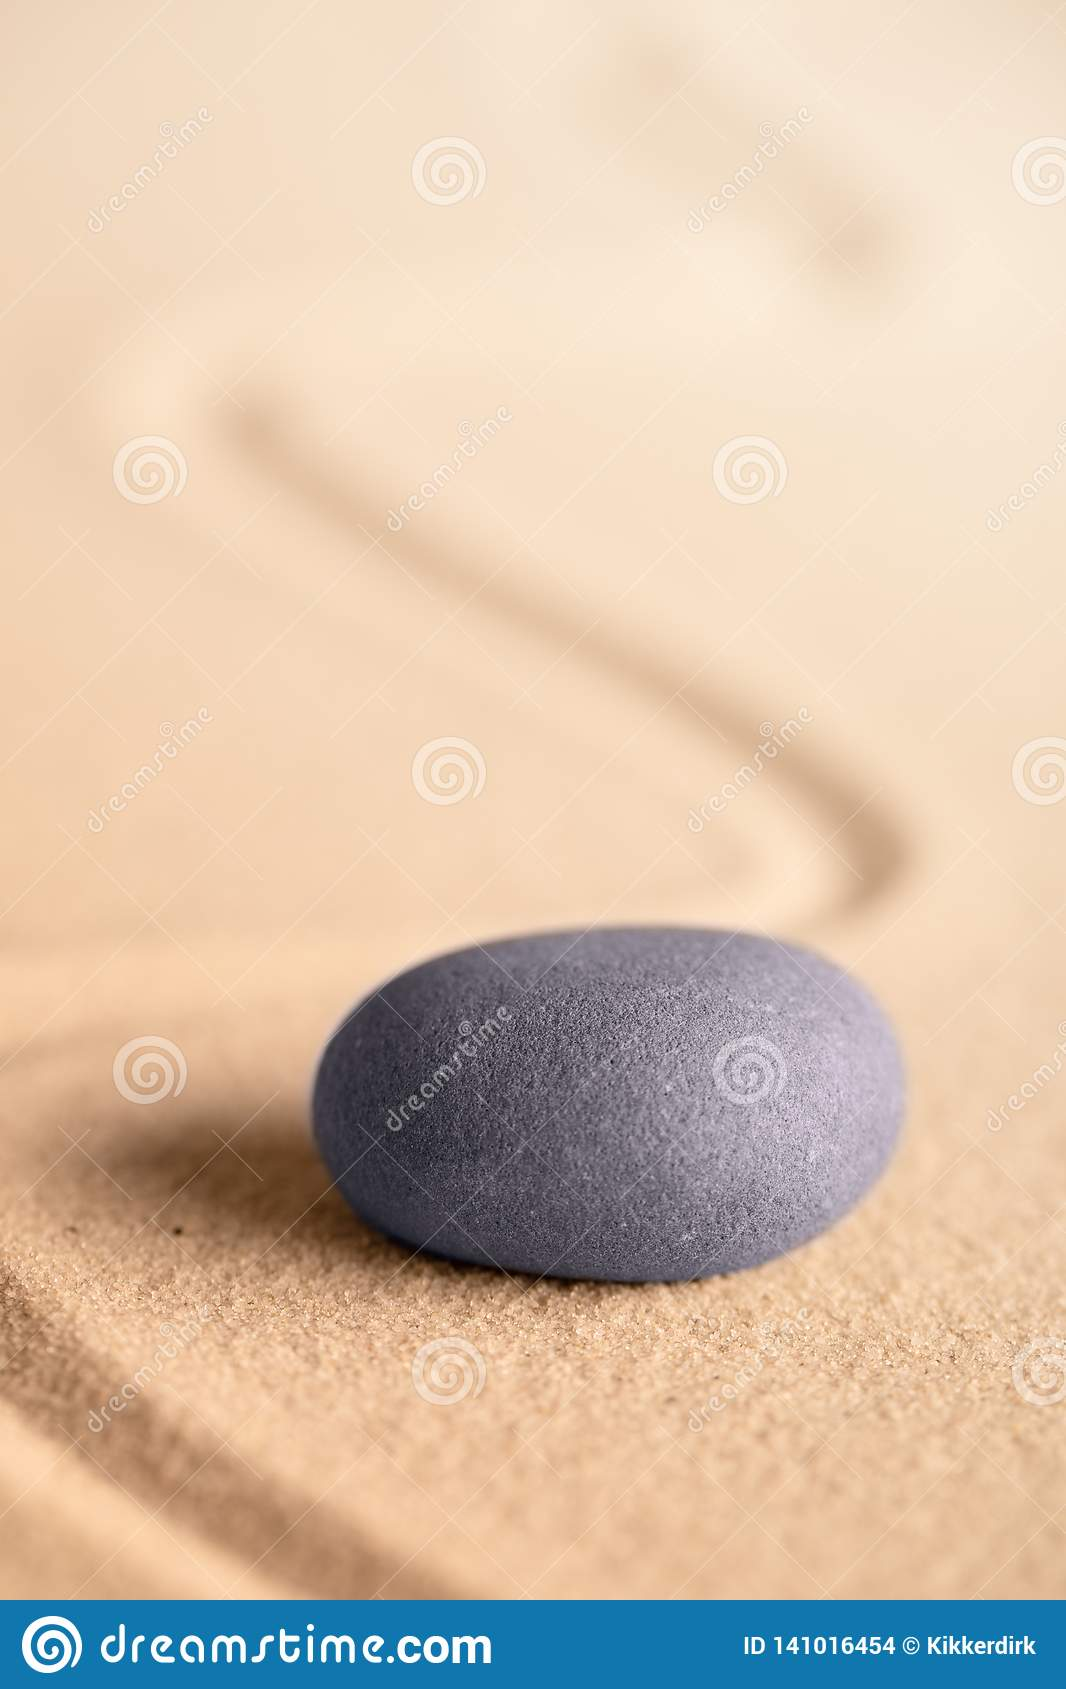 Zen meditation stone in a Japanese garden with raked sand